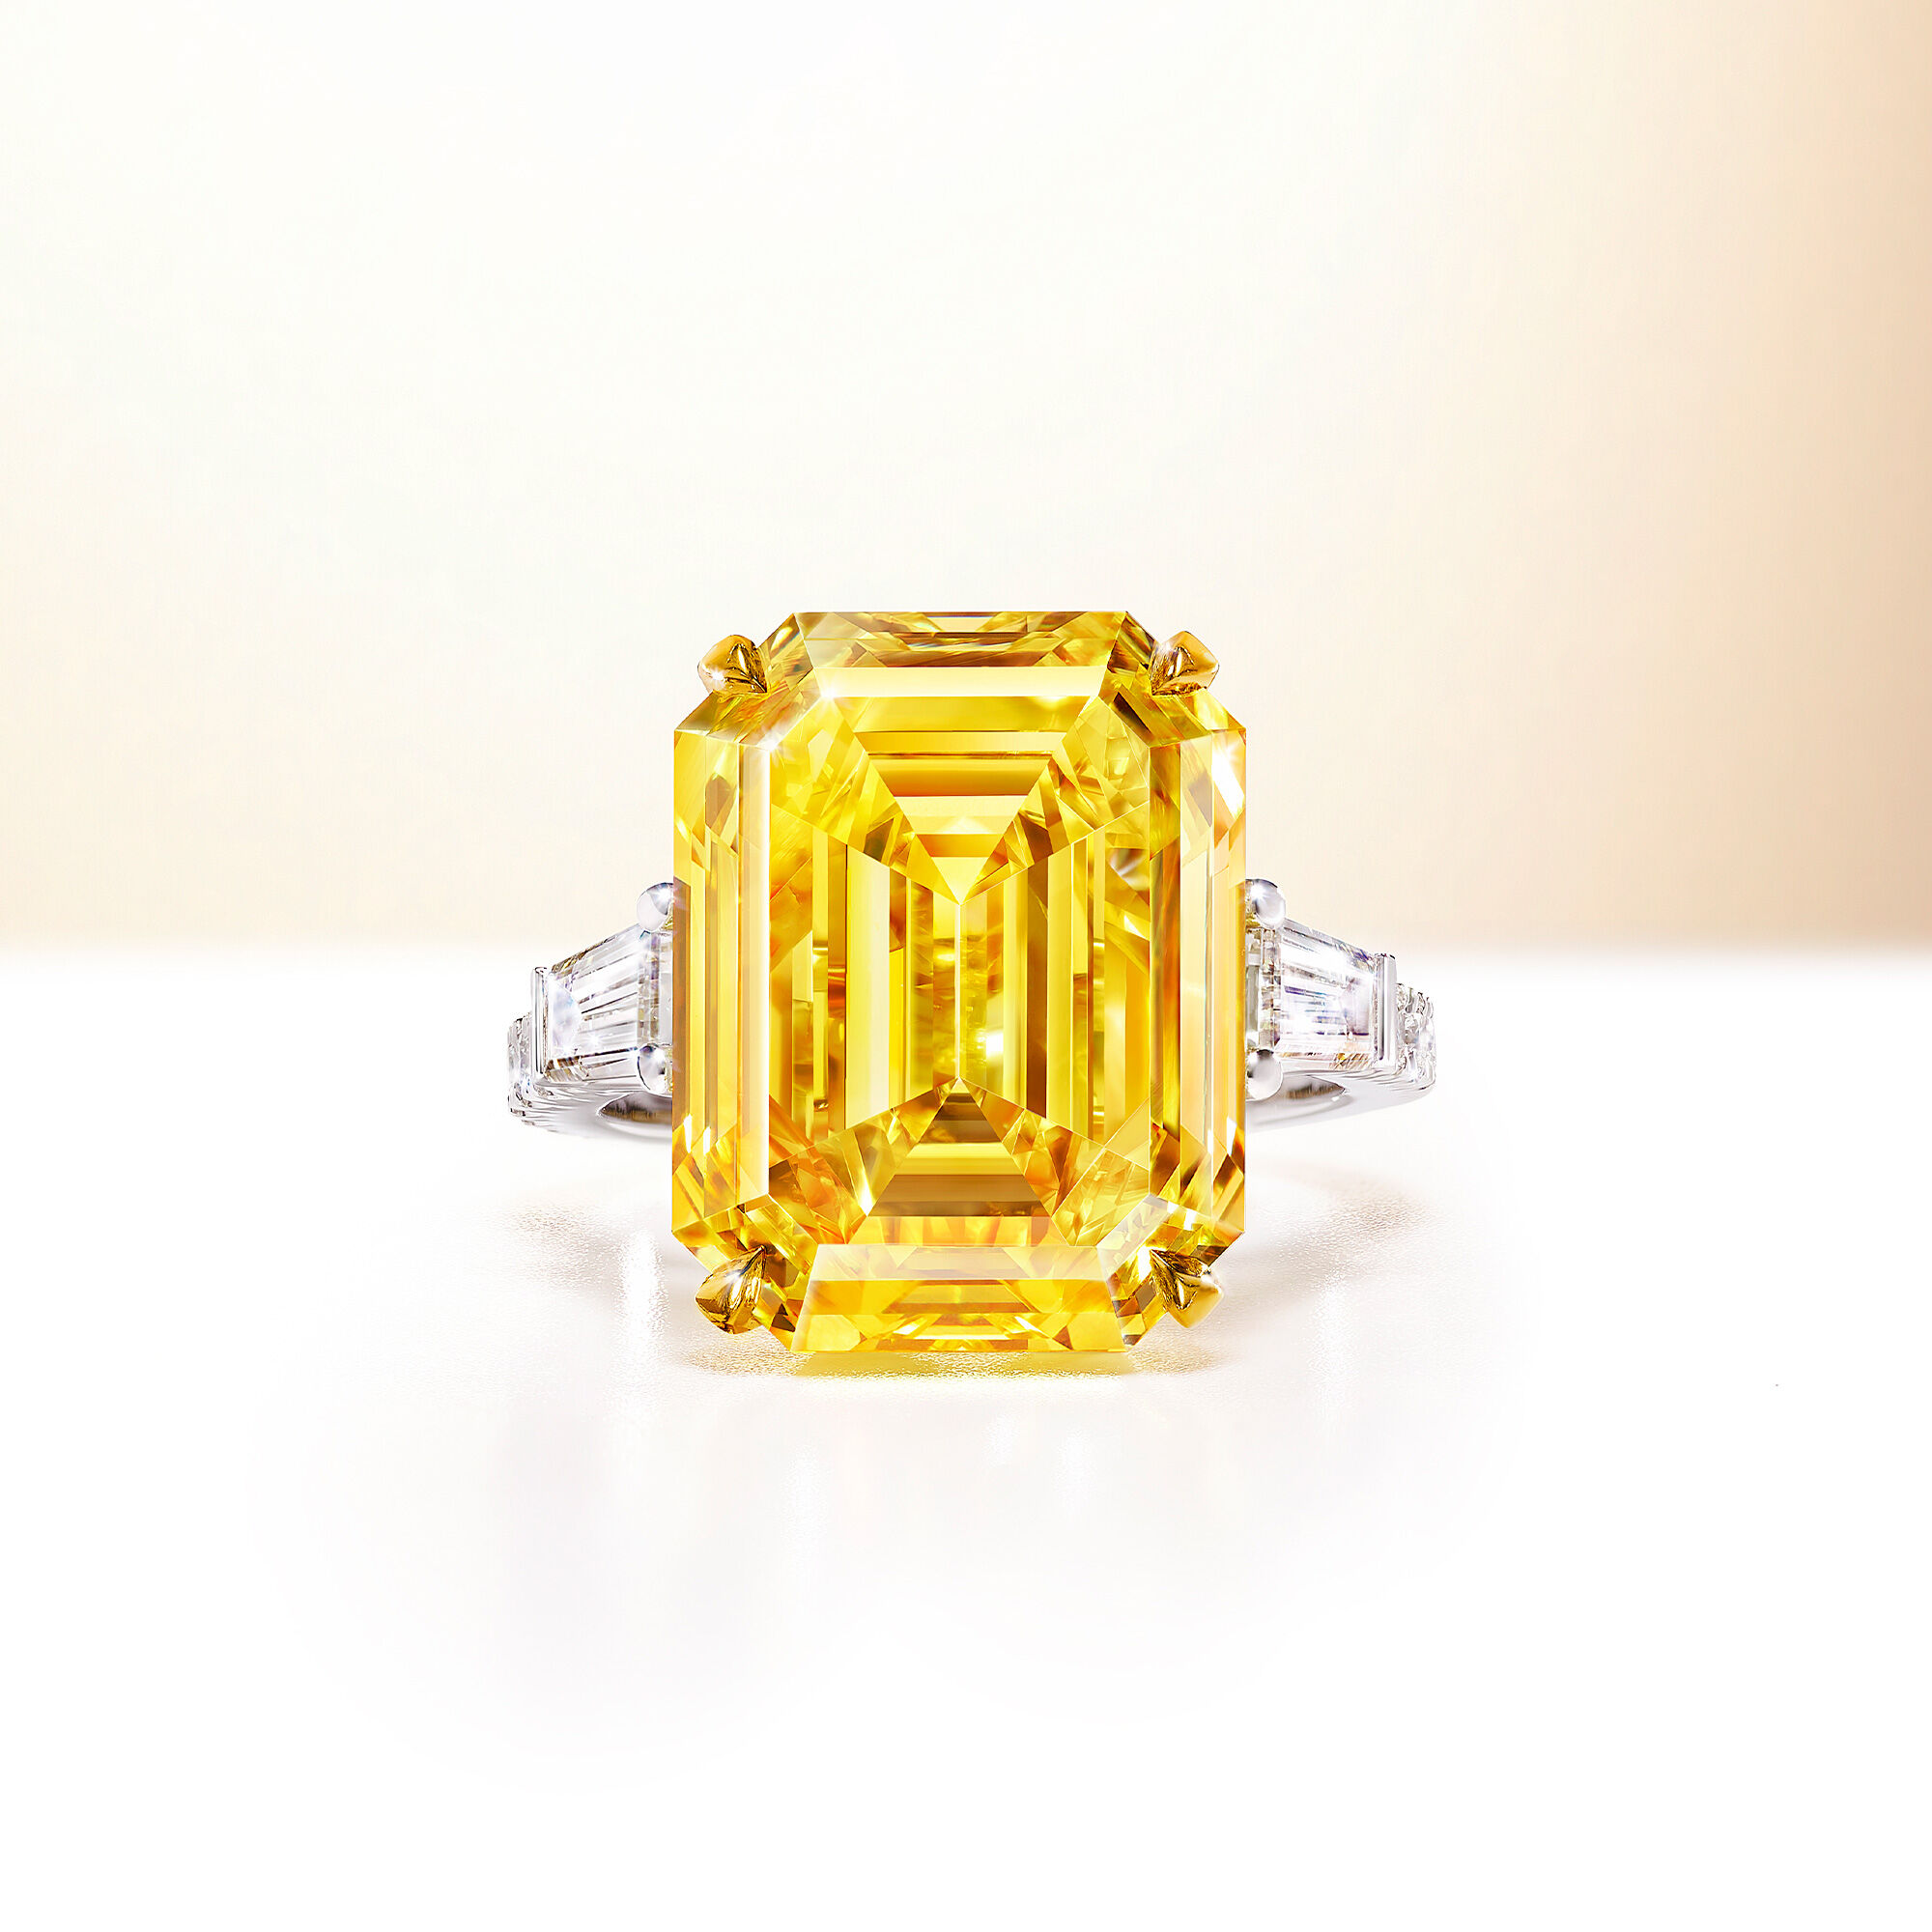 A 15.47 fancy vivid yellow emerald cut Graff diamond ring